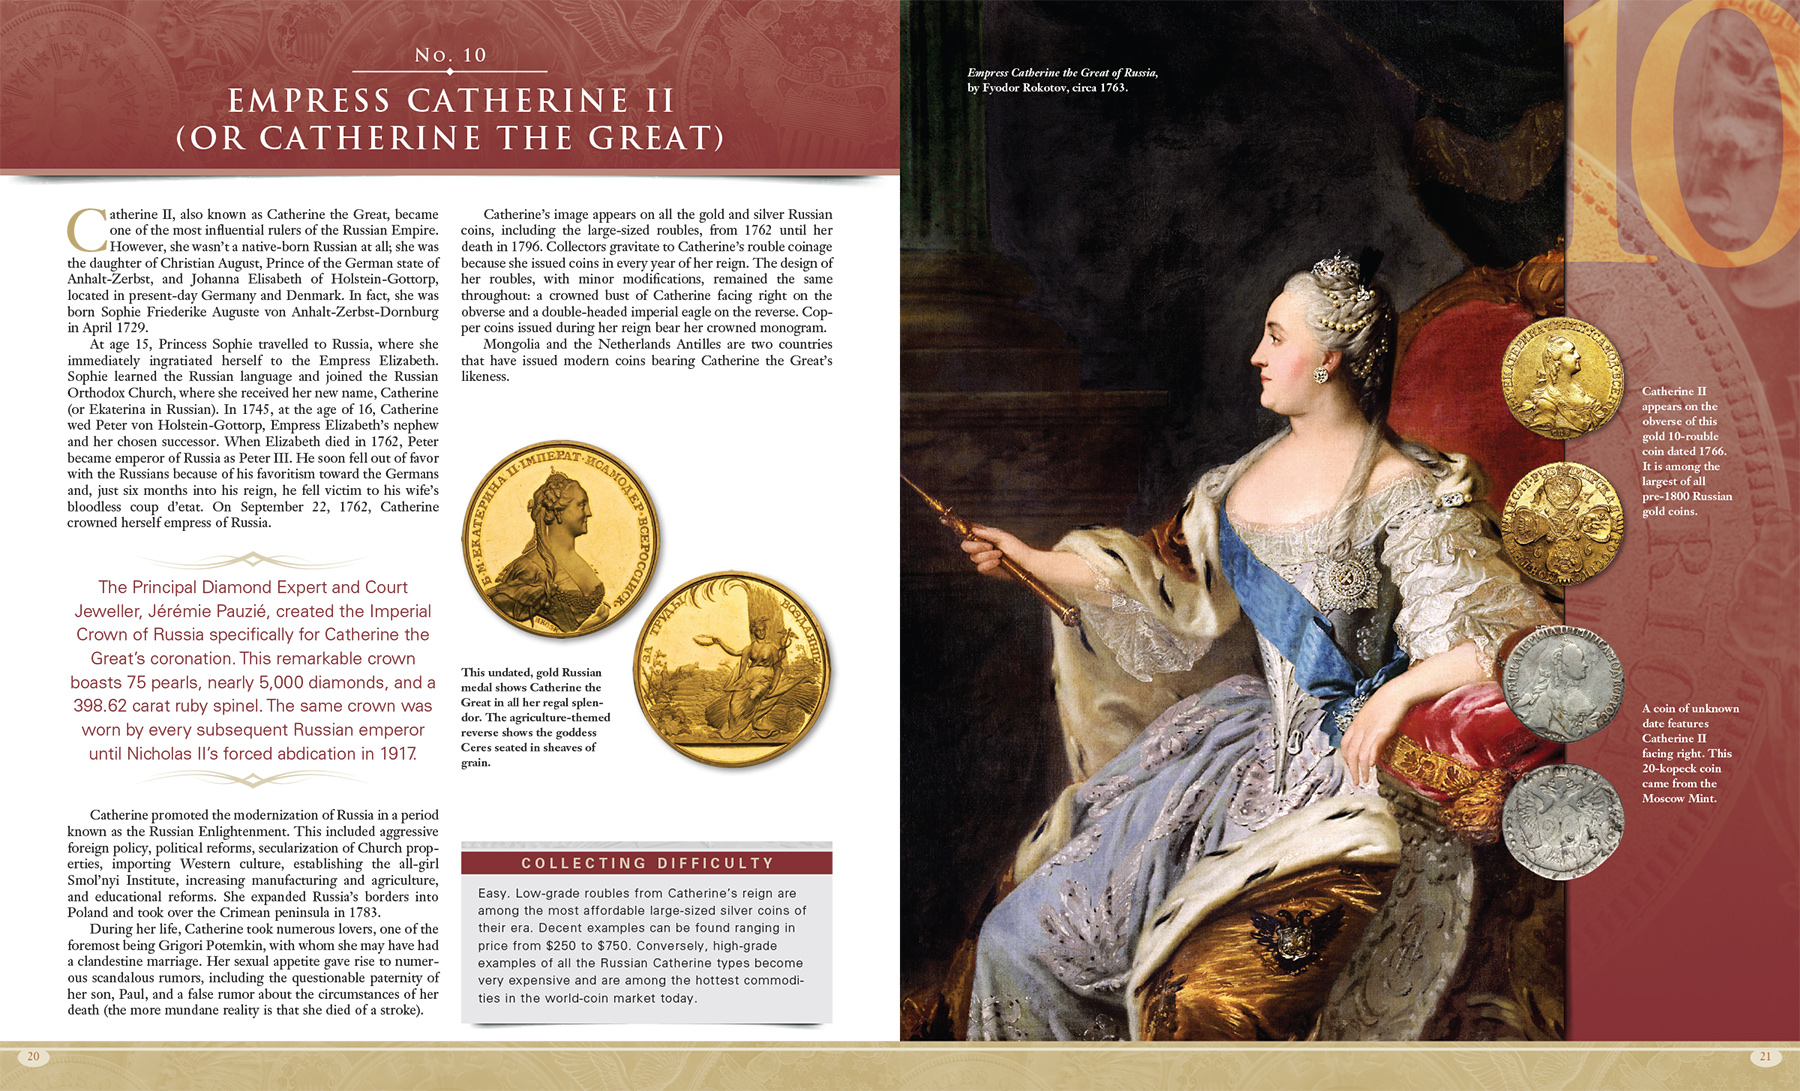 an analysis of the catherine the great throughout the history of russia The history of russia begins with that of the east slavs the traditional beginning of russian history is 862 ad kievan rus', the first united eastern slavic state, was founded in 882 the state adopted christianity from the byzantine empire in 988, beginning with the synthesis of byzantine and slavic cultures that defined orthodox slavic culture for the next millennium.